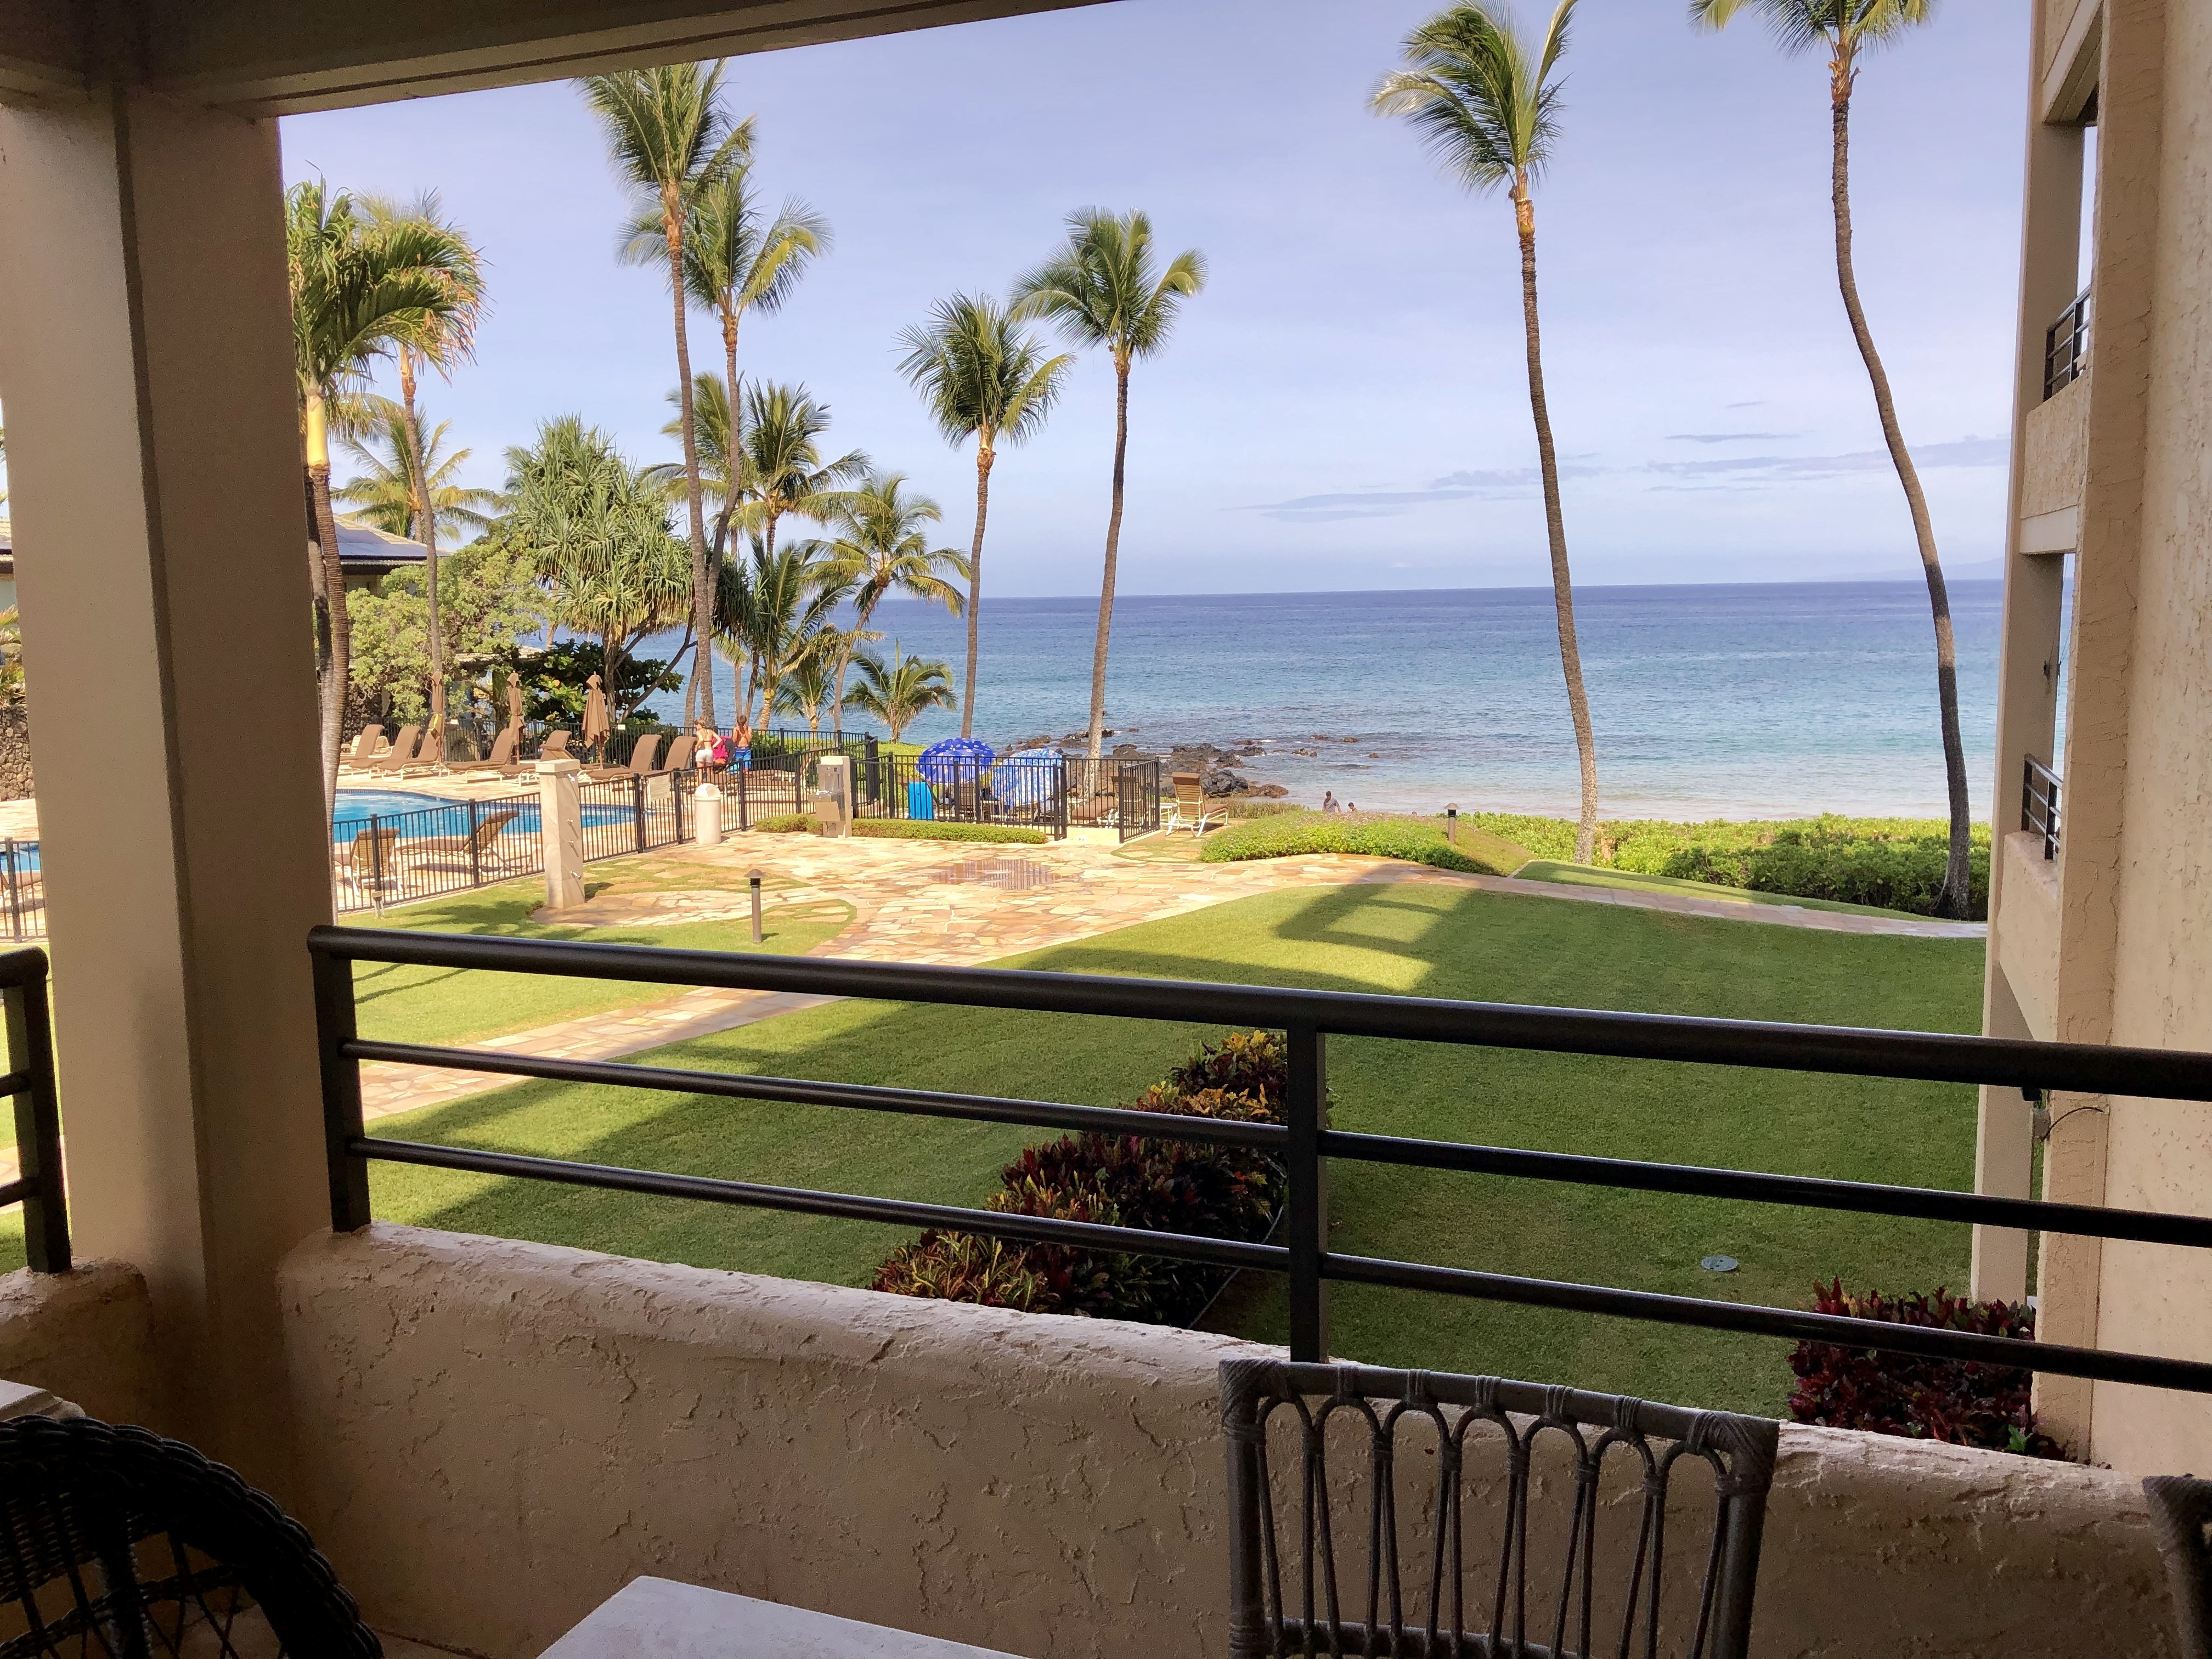 polo beach club makena maui